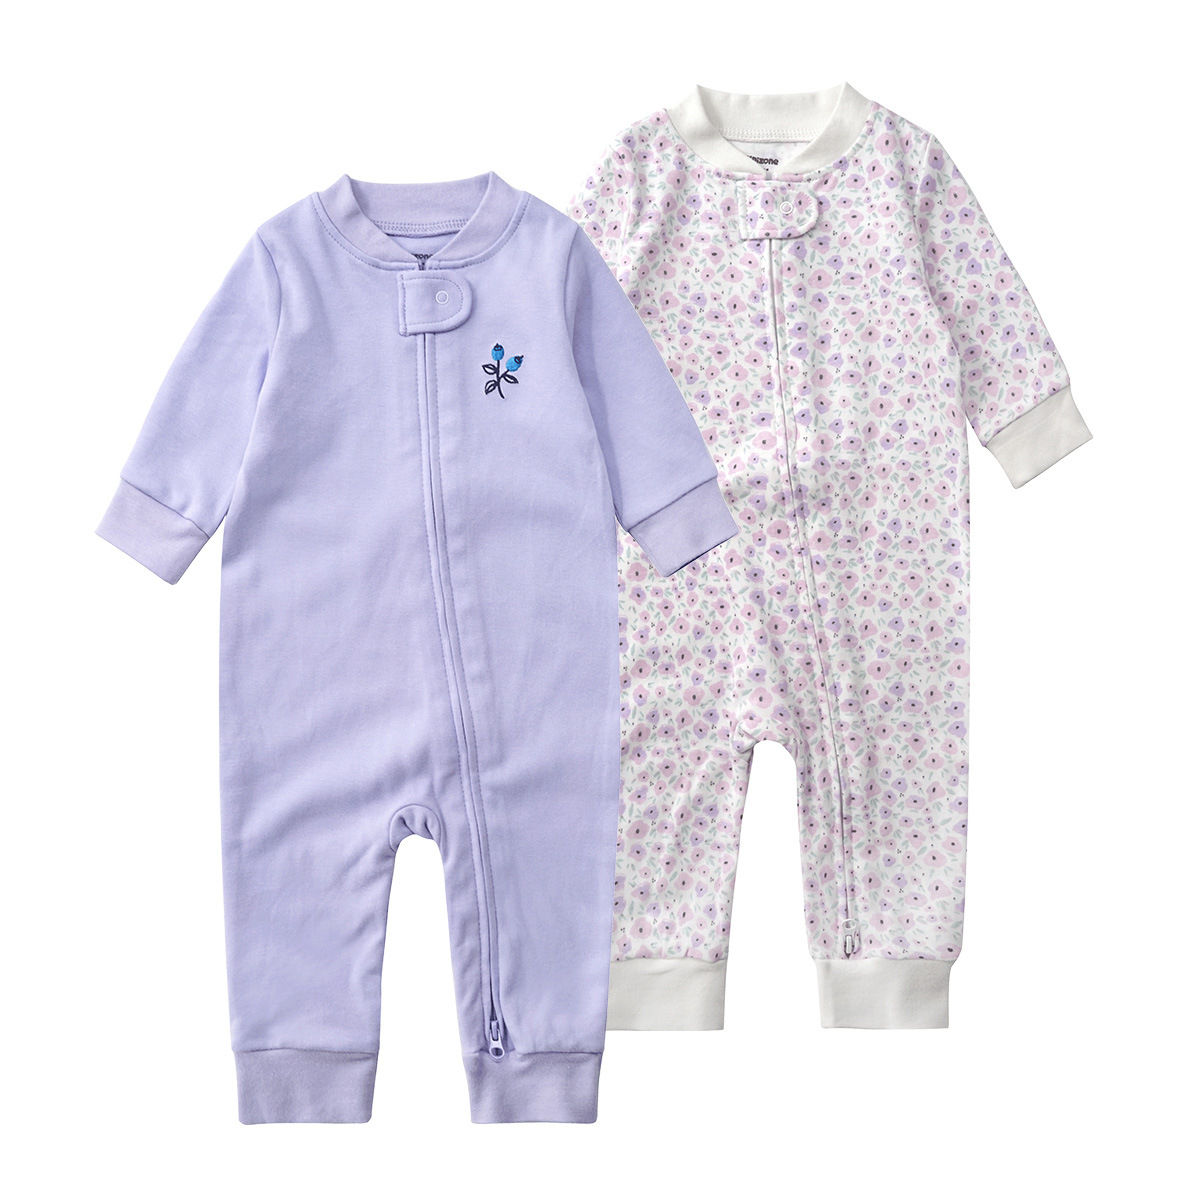 2ps/pack 2018 new baby Clothes Spring And Autumn Newborn Baby Girl   Romper   cotton Baby Jumpsuit Brands Baby Clothes